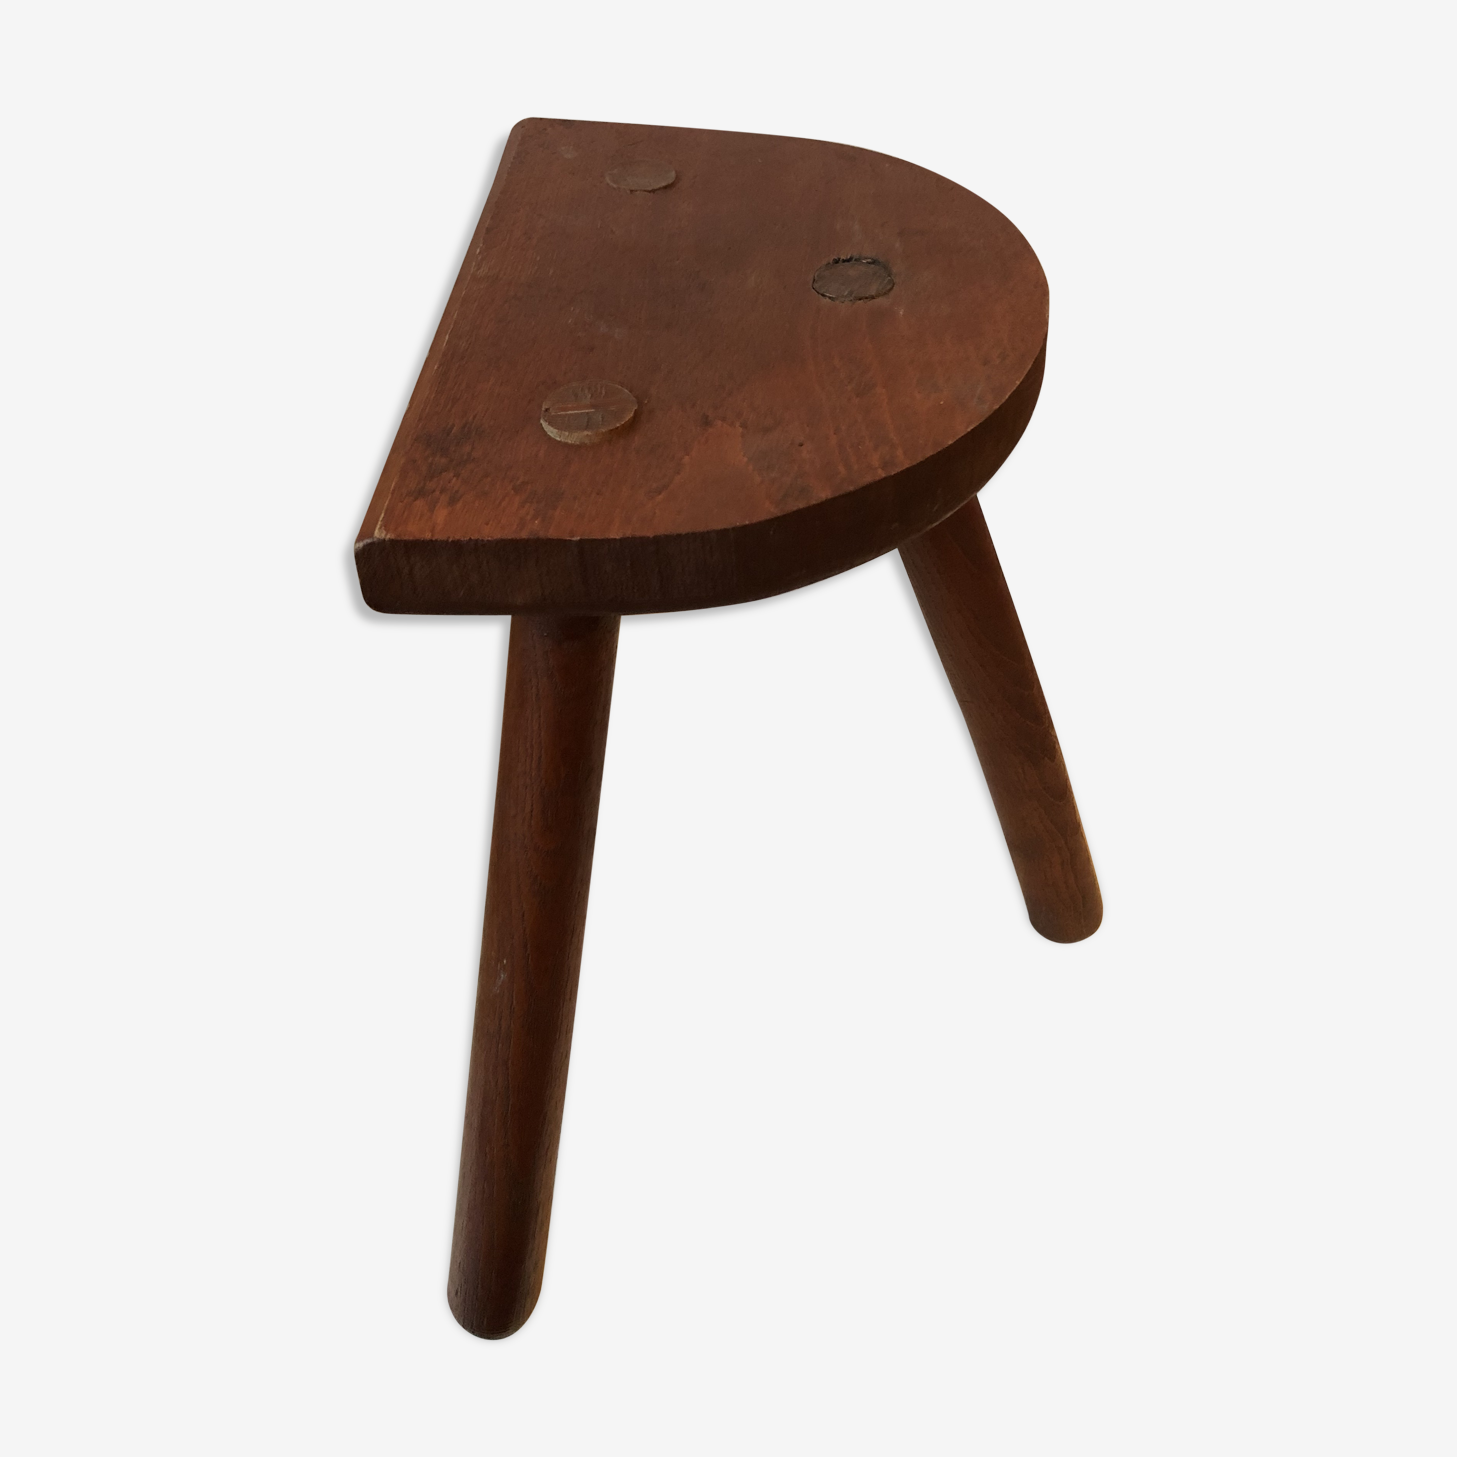 Old wooden tripod stool